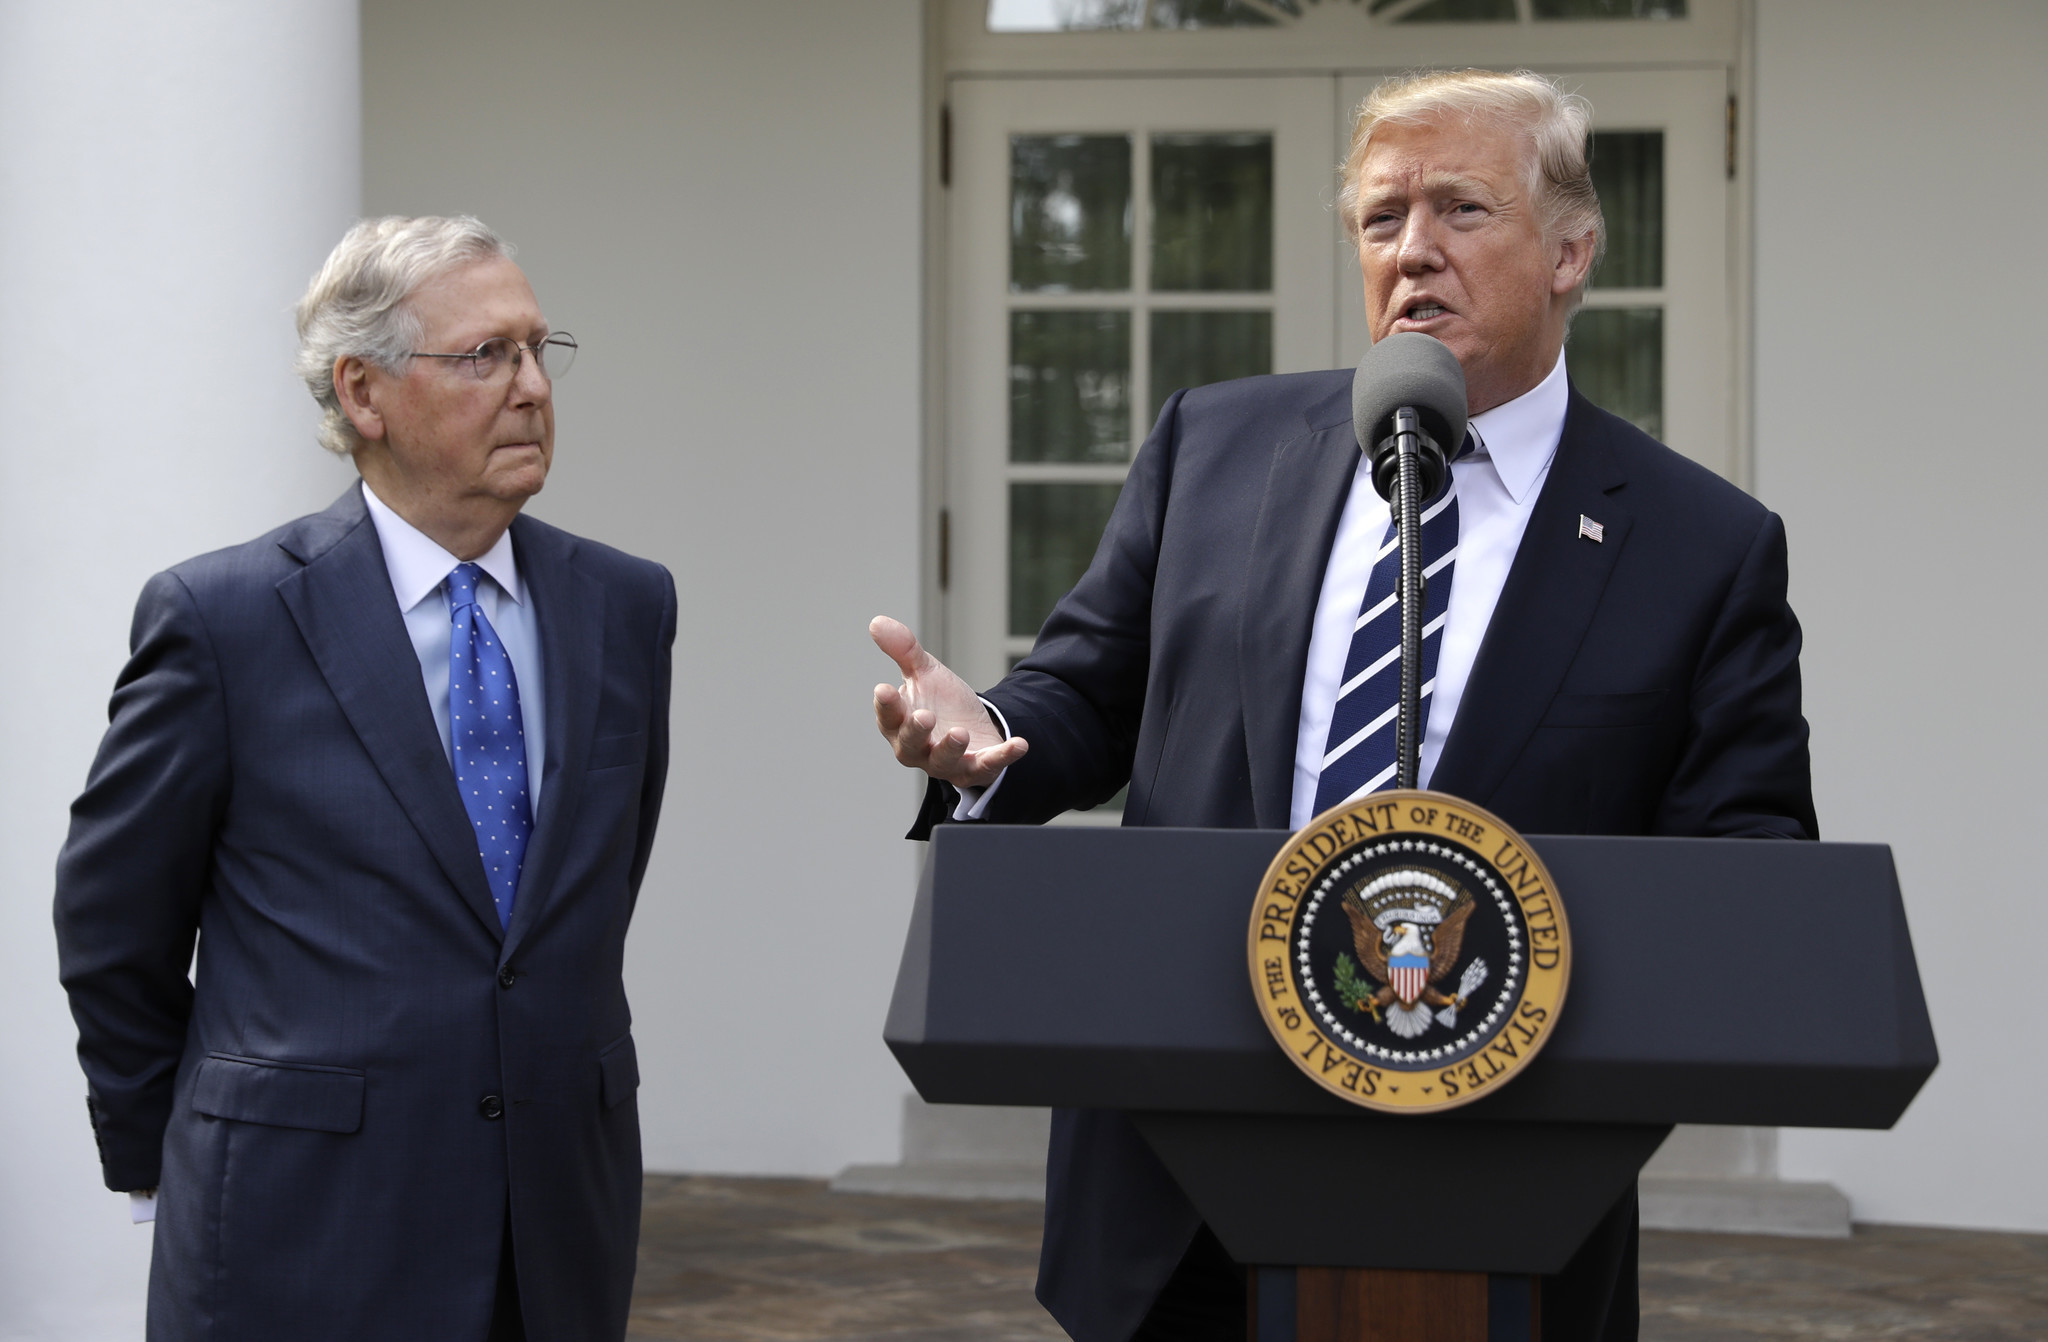 Trump, McConnell insist they're together for GOP agenda